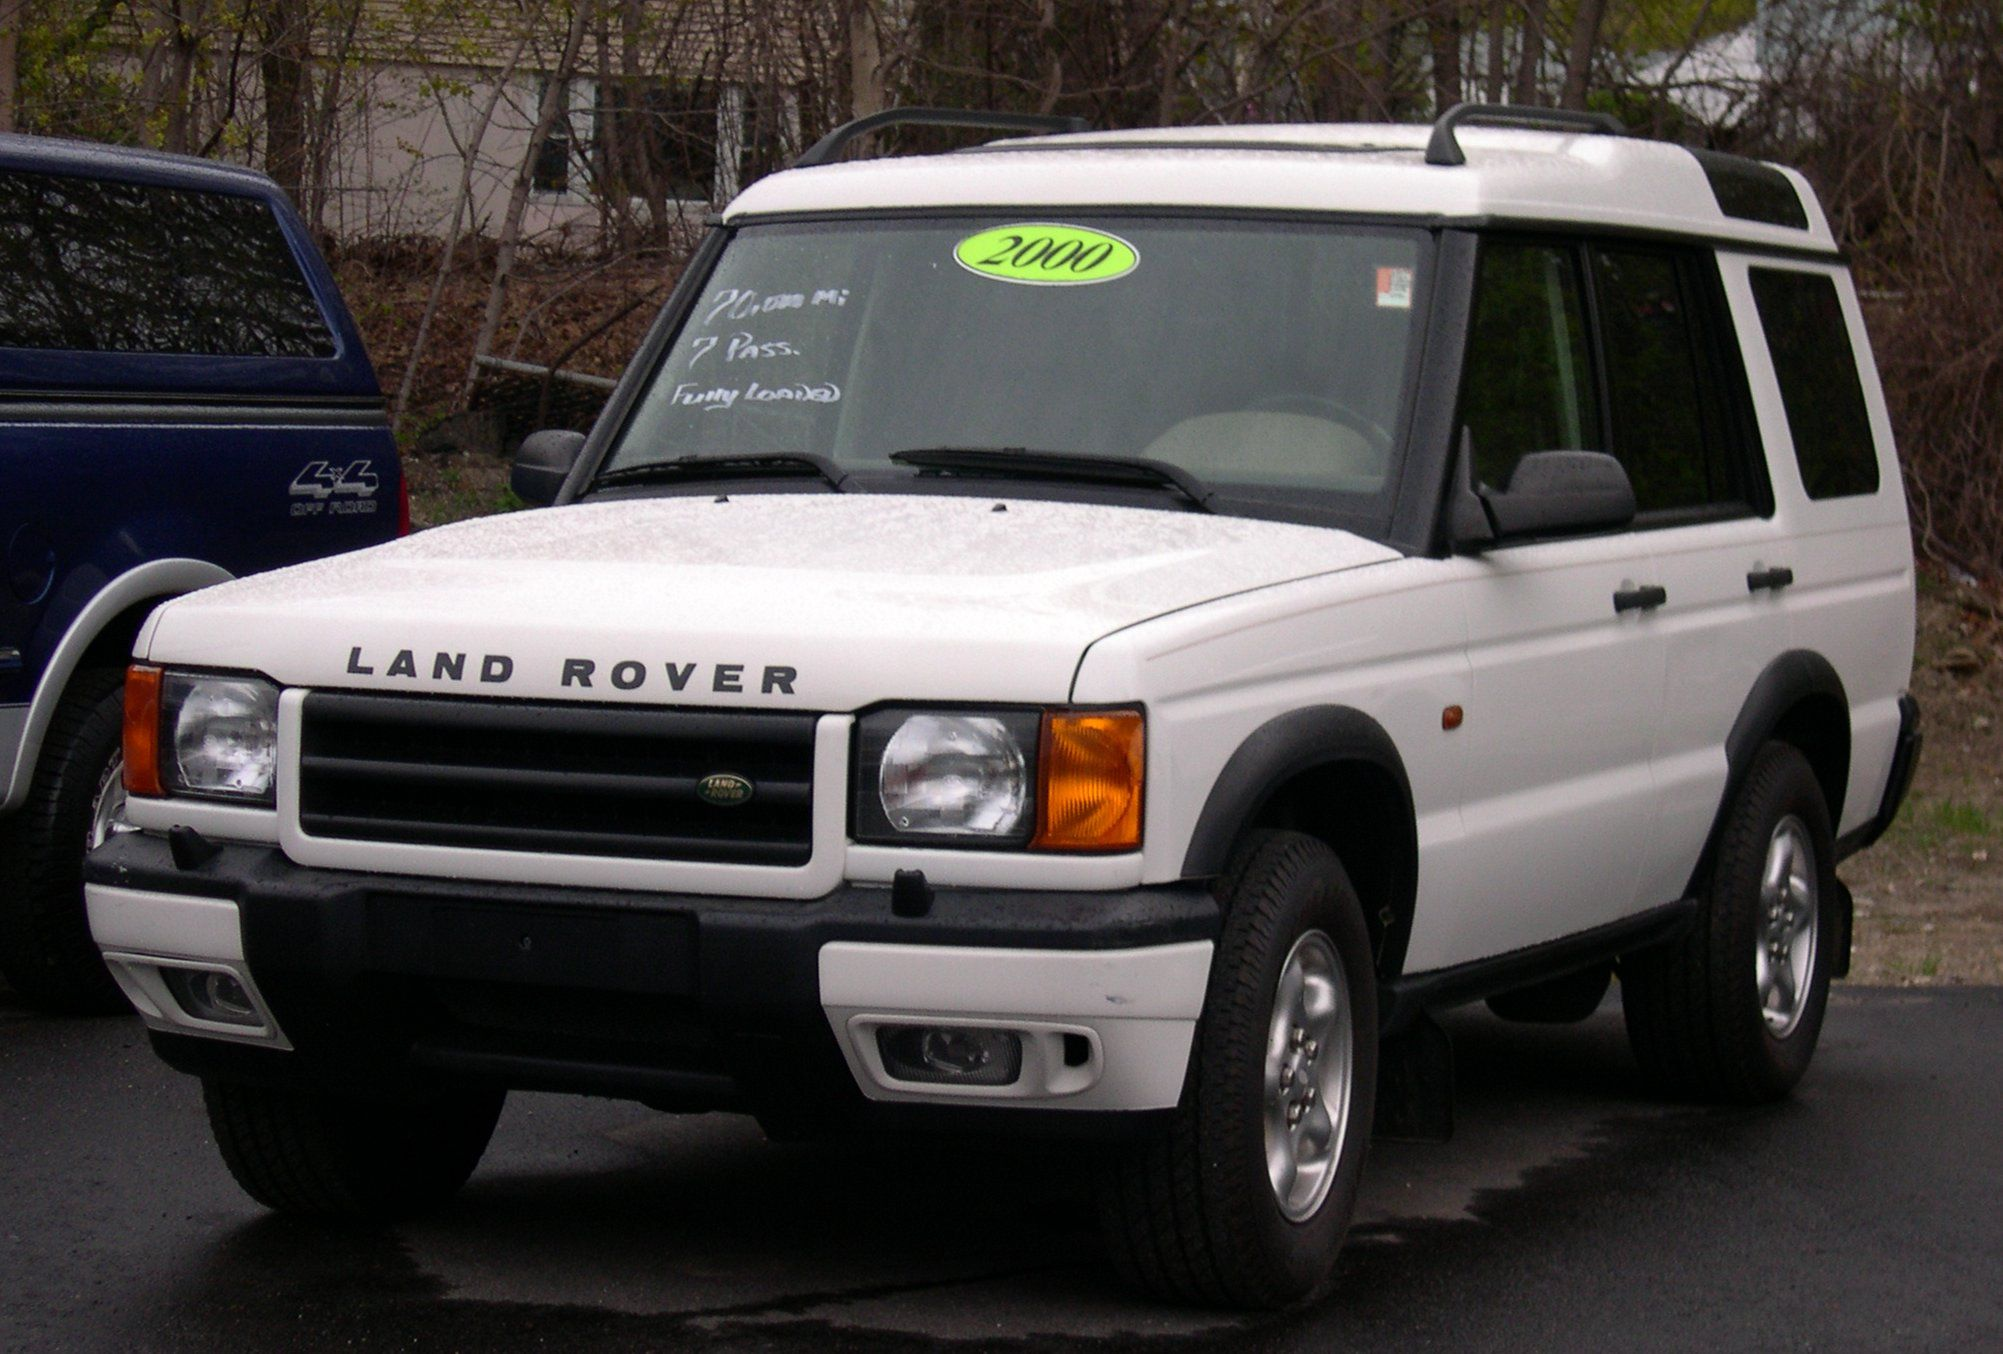 Find this pin and more on cool land rover